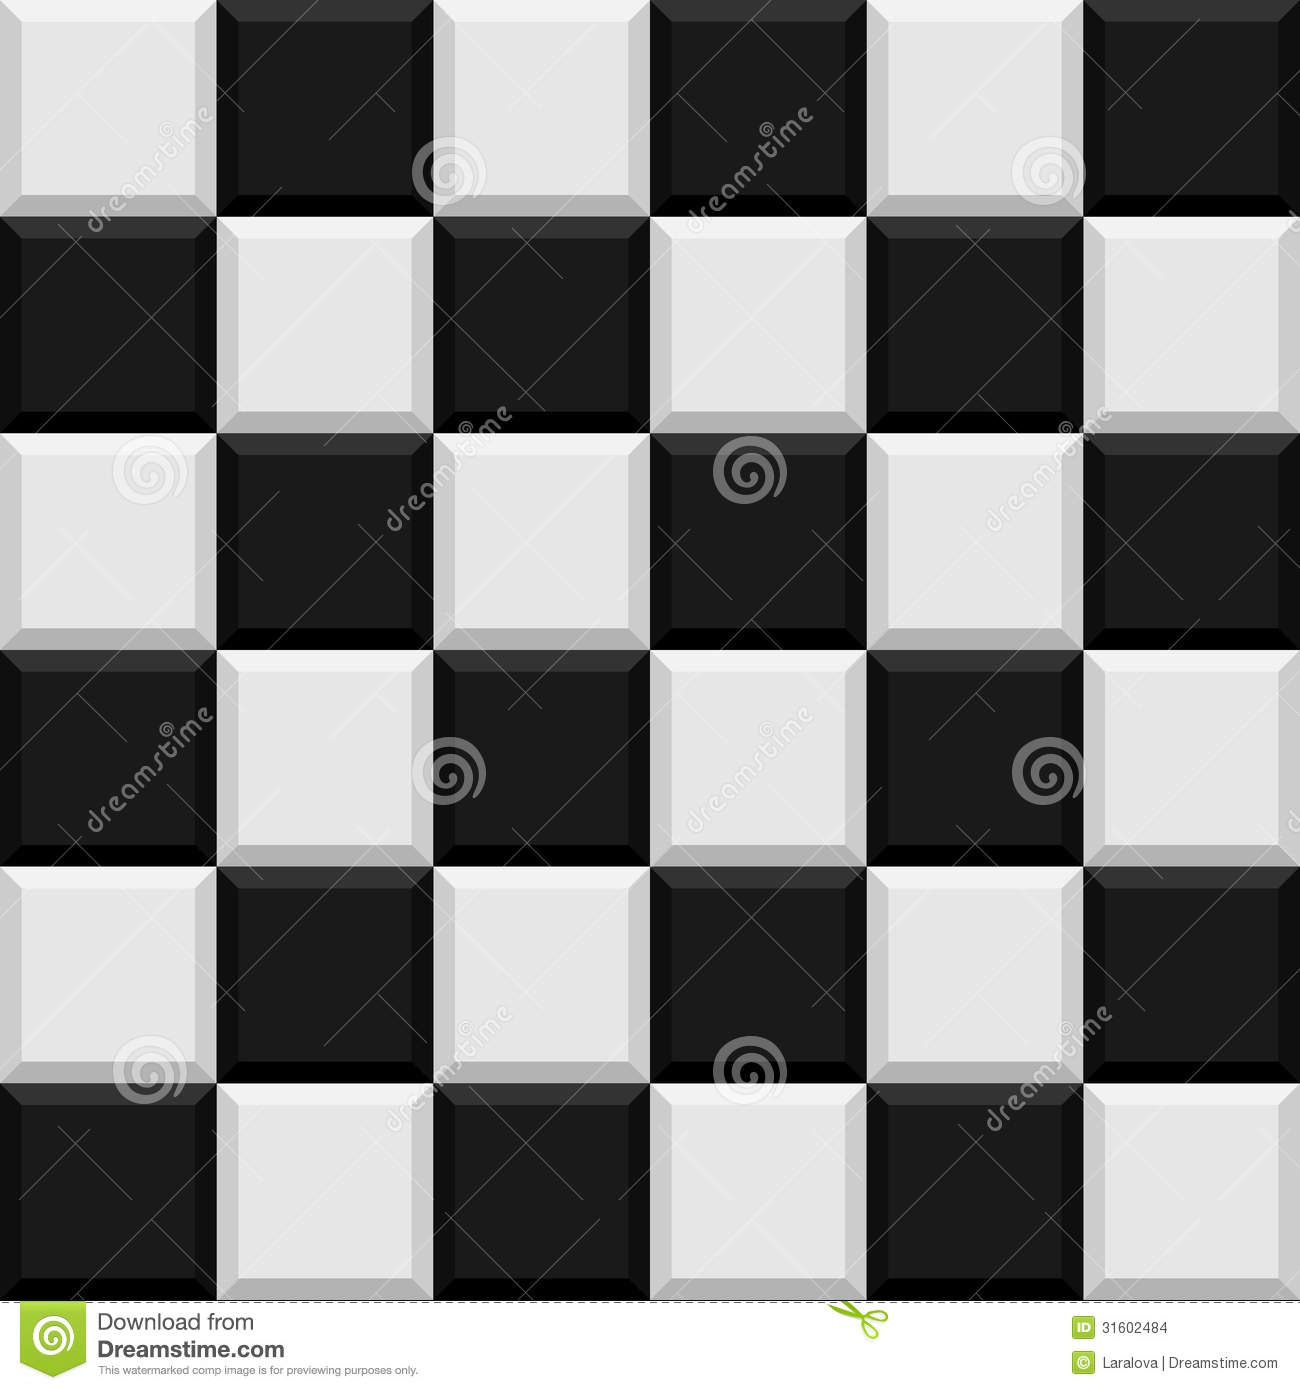 Black And White Tiles Seamless Pattern Stock Images - Image: 31602484